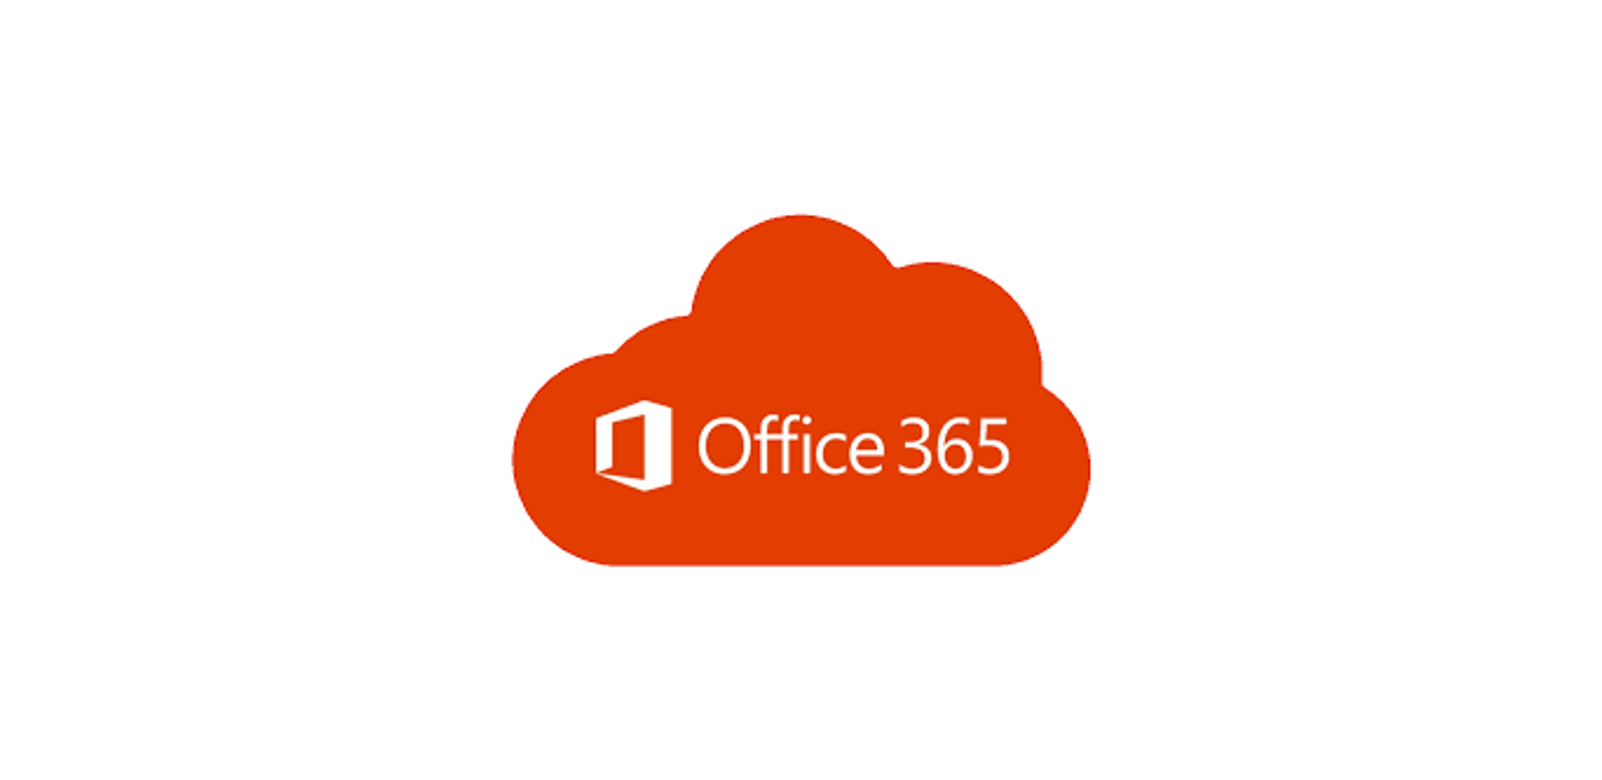 https://drcltd.co.uk/wp-content/uploads/2021/04/Office365.png